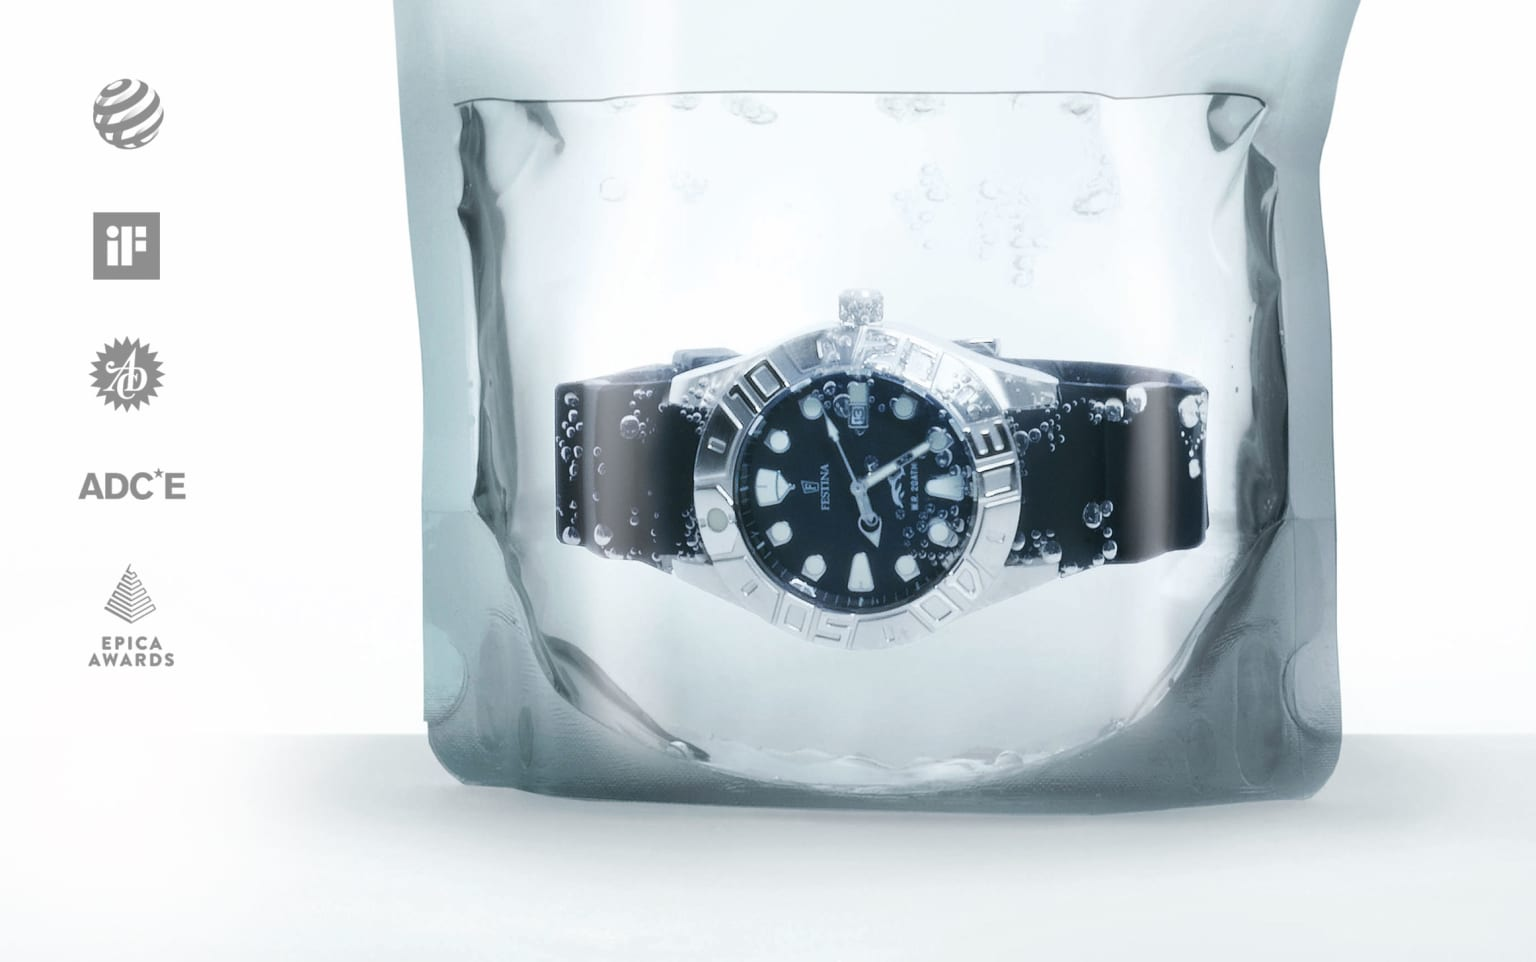 Festina Diver Watch – Waterproof